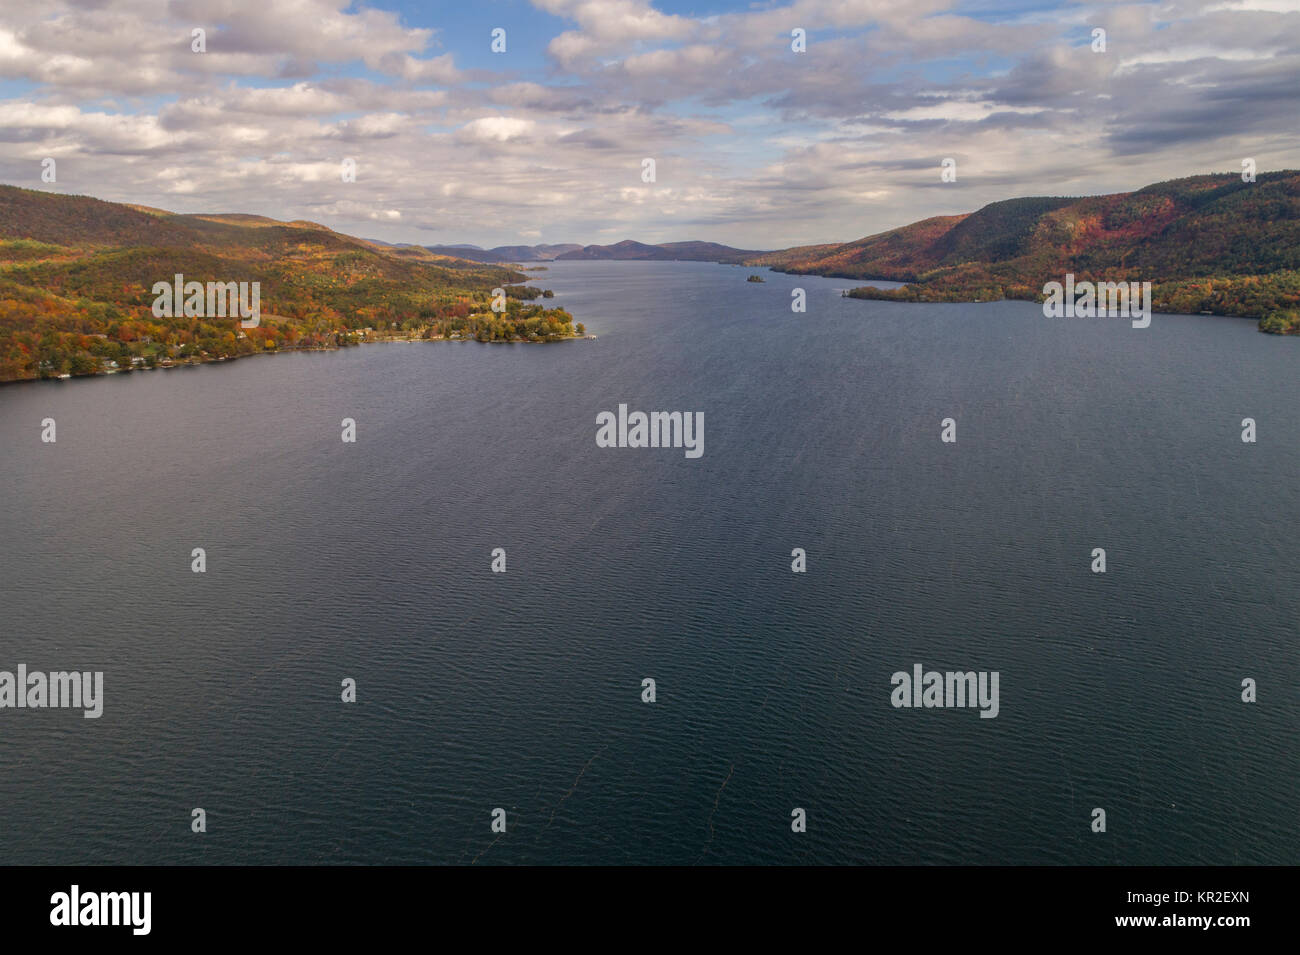 View from Sabbath Day Point, Lake St. George, New York, USA - Stock Image